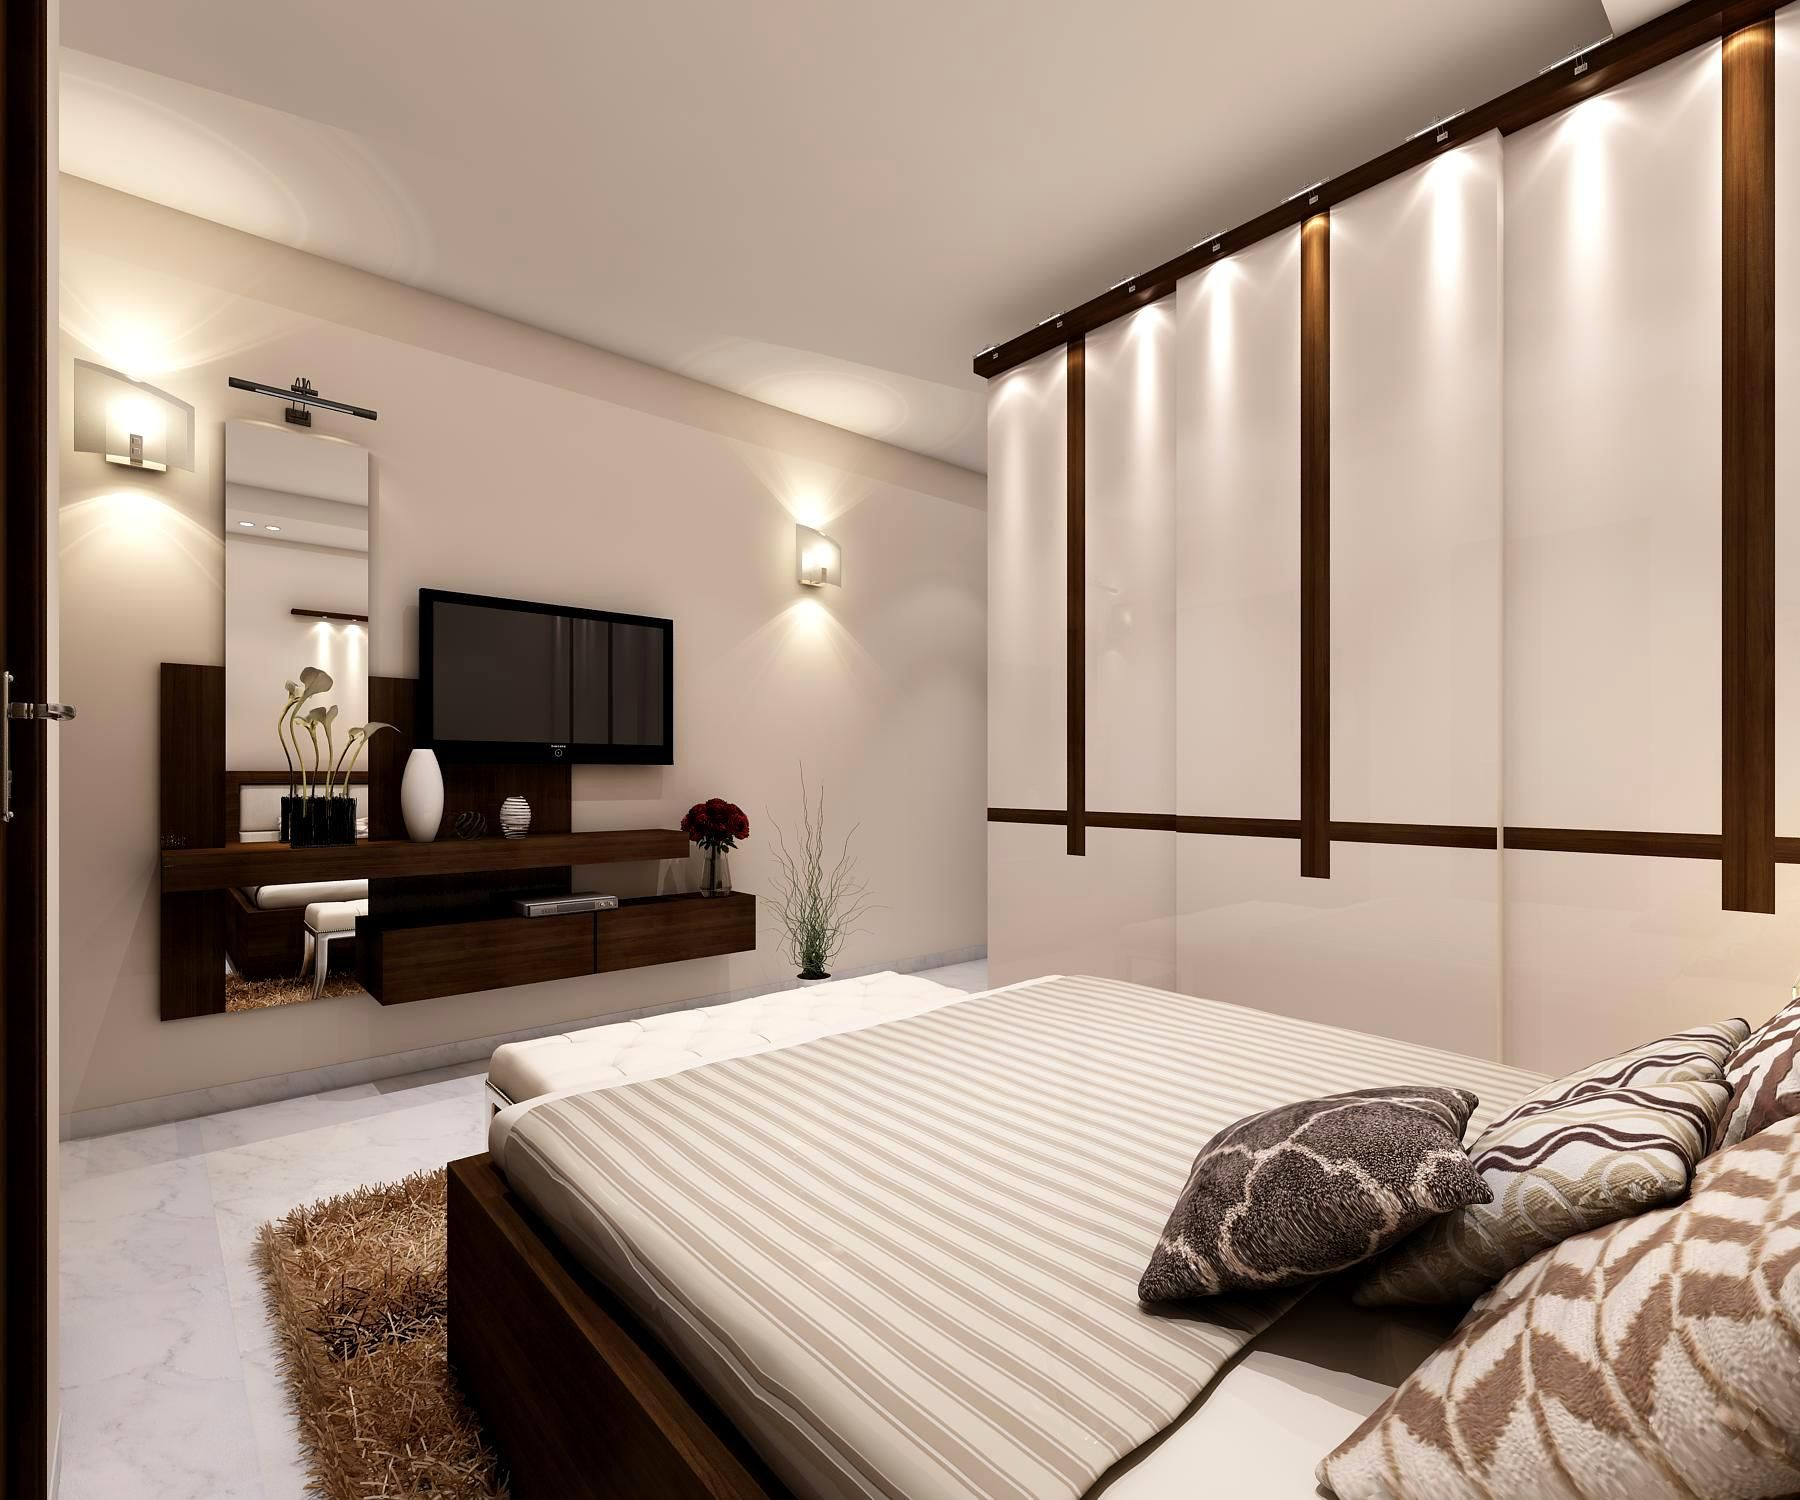 Small Room Design Project Banita Sethi Small Room Design Room